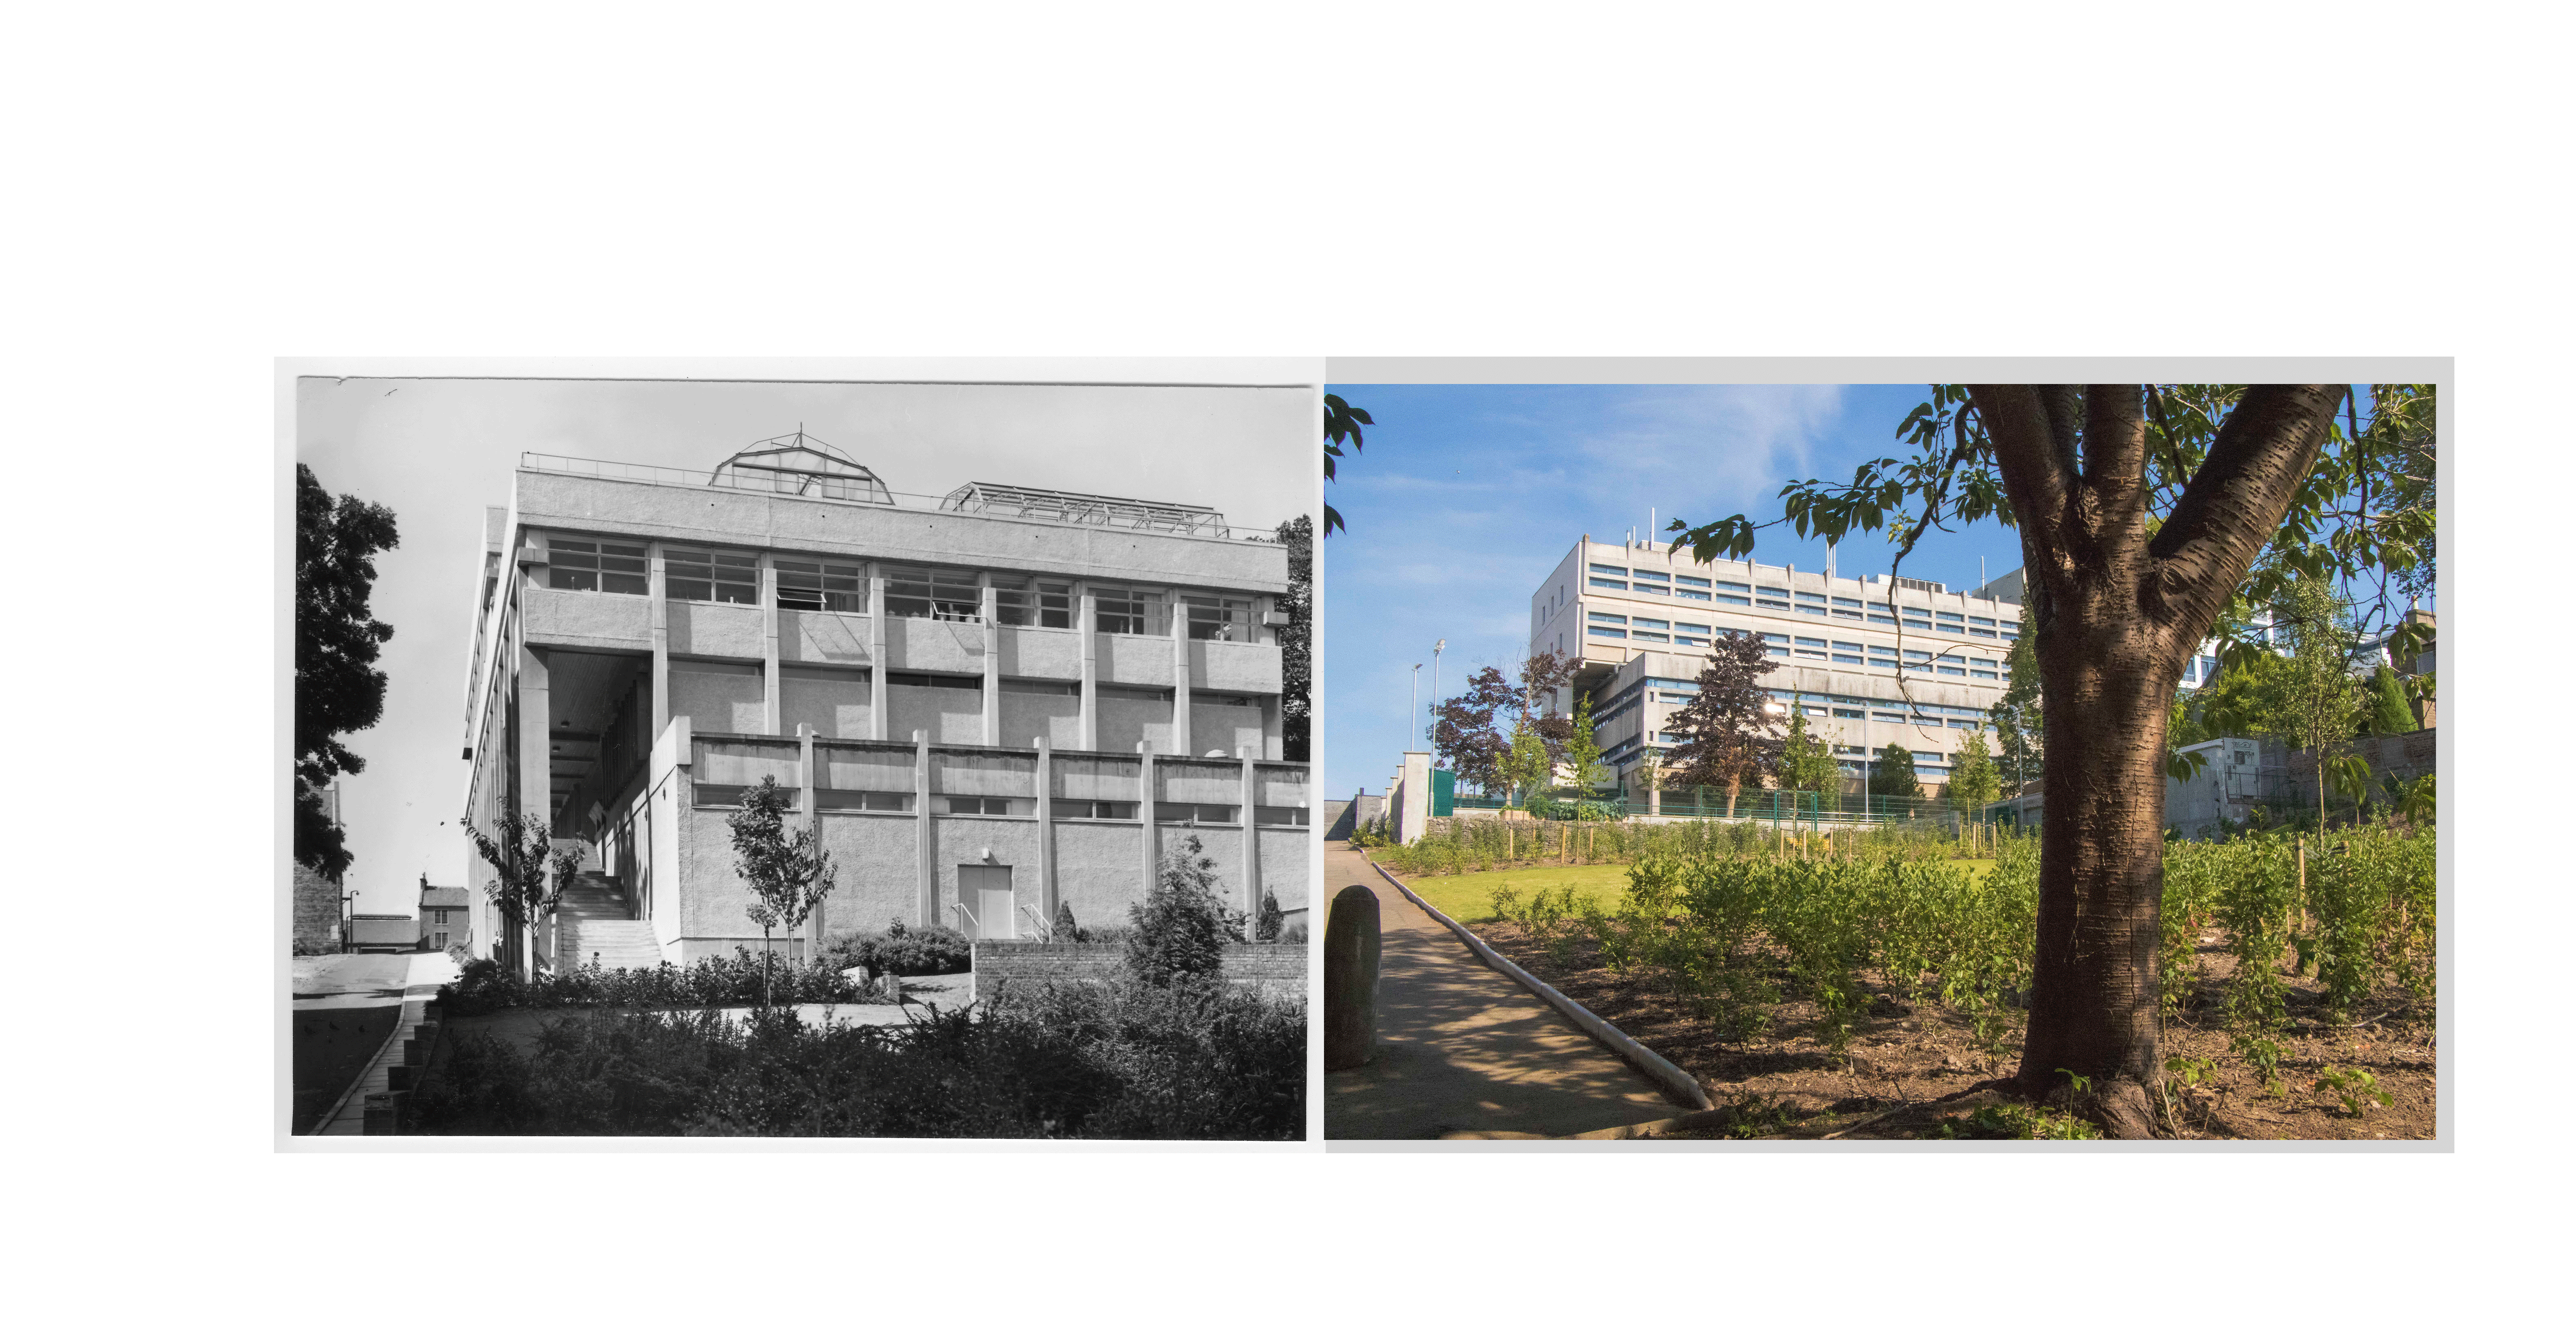 Past and Present - The Biological Sciences Institute and the allotments and edible garden that have replaced it.